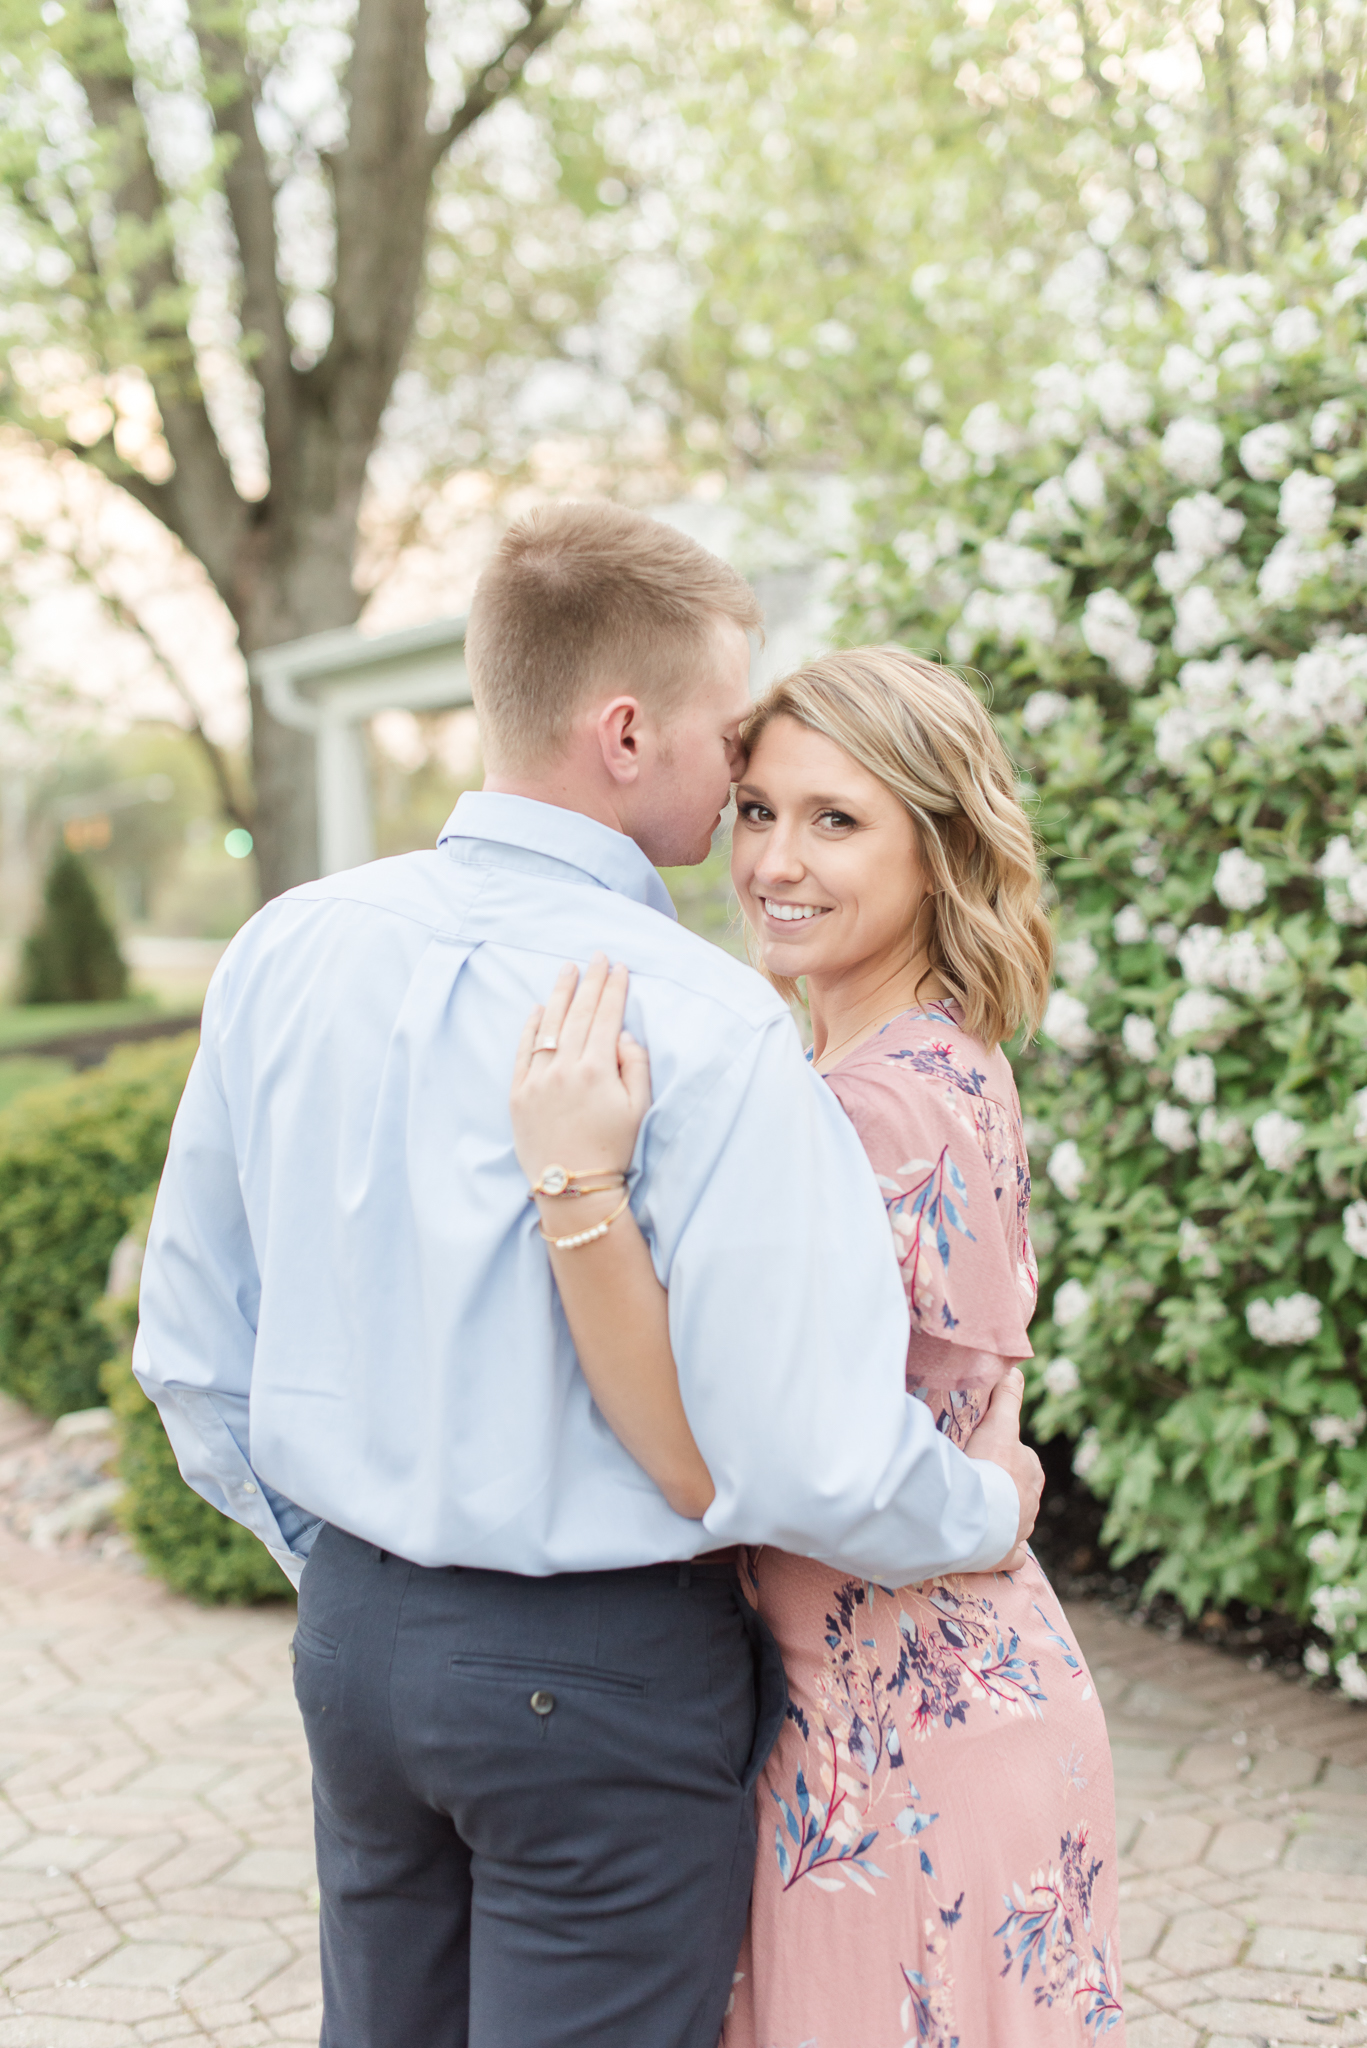 Richie Woods Nature Preserve and Mustard Seed Gardens Engagement Session Wedding Photos-62.jpg